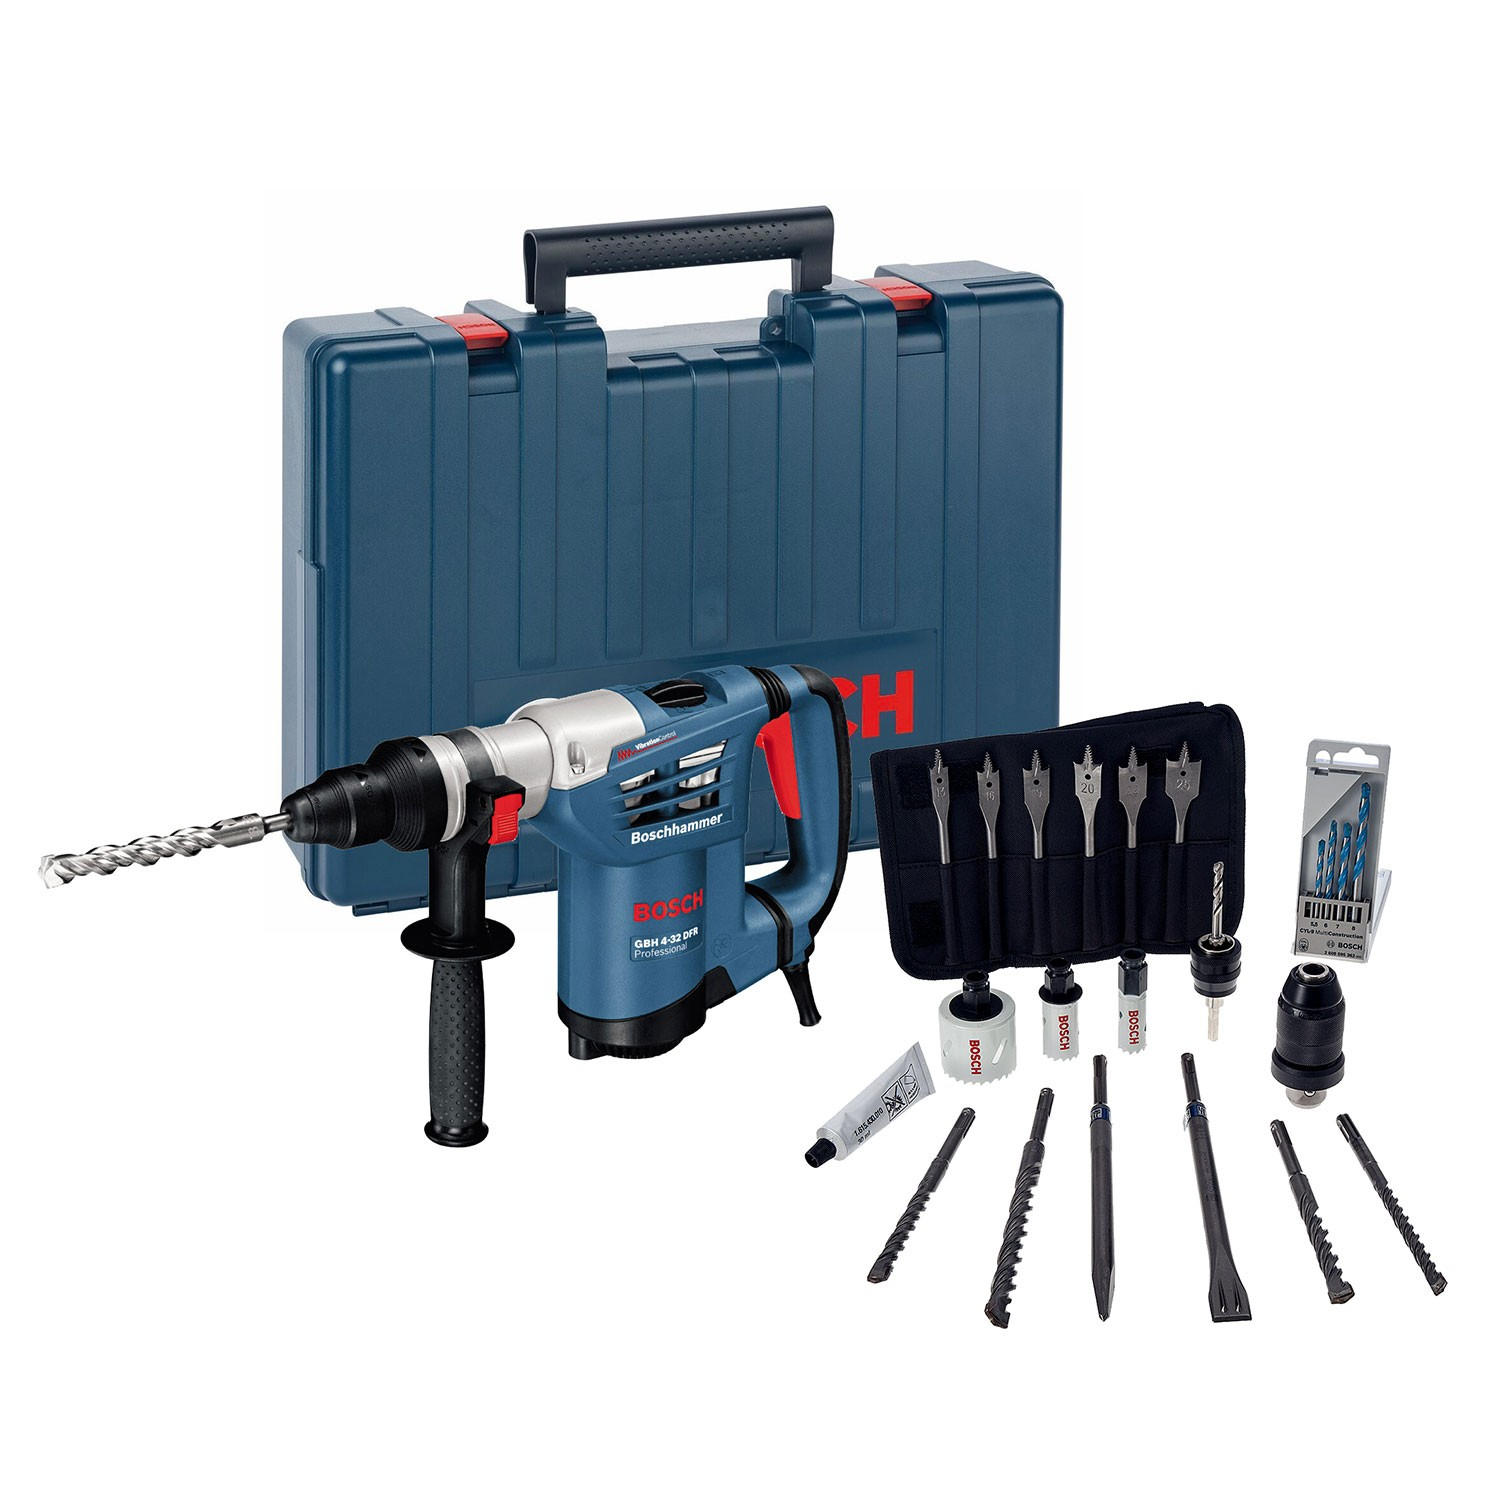 bosch gbh 4 32 dfr sds rotary hammer with qcc powertool world. Black Bedroom Furniture Sets. Home Design Ideas